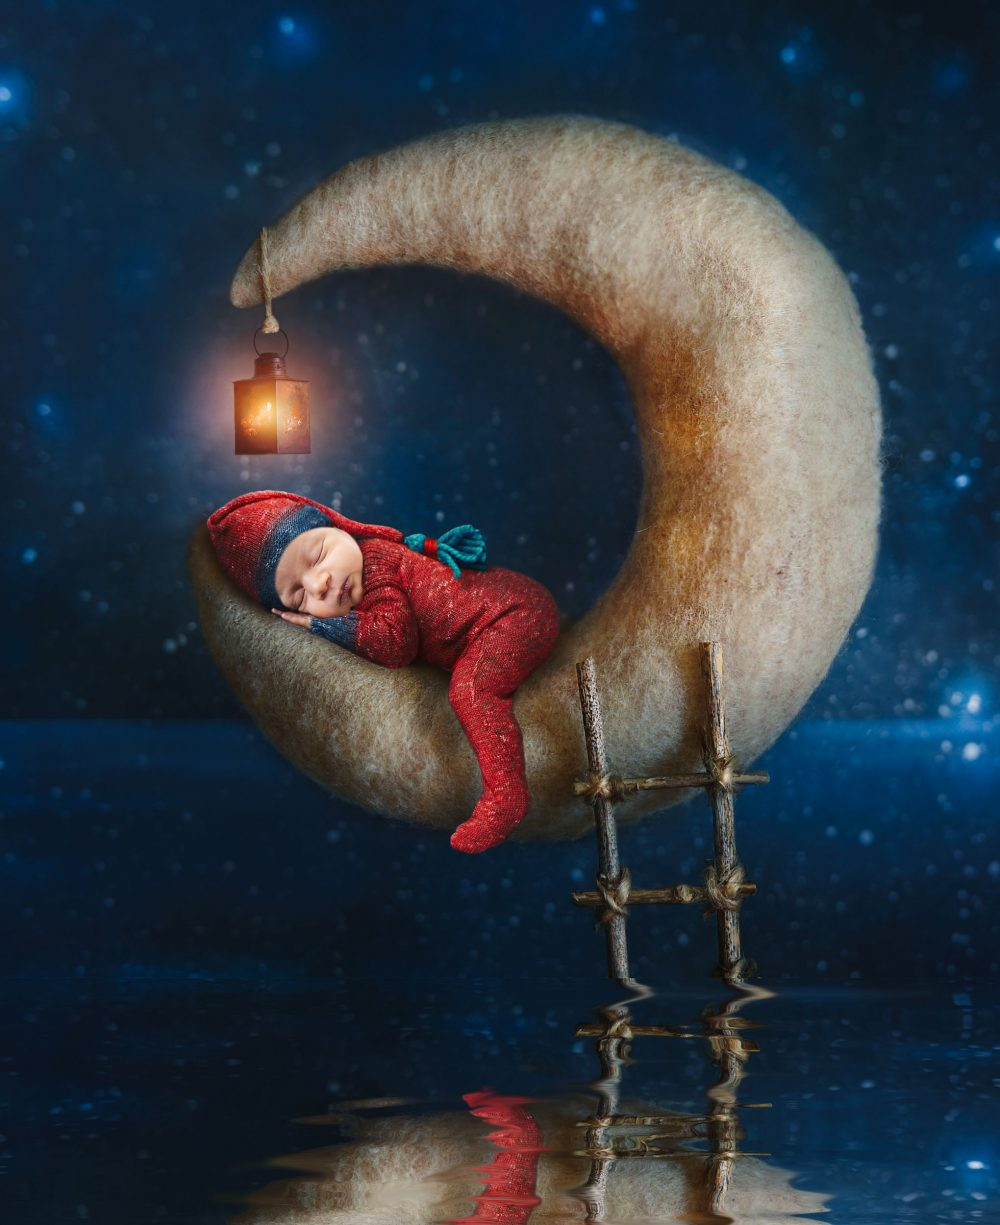 baby on a moon newborn photography cute baby photo